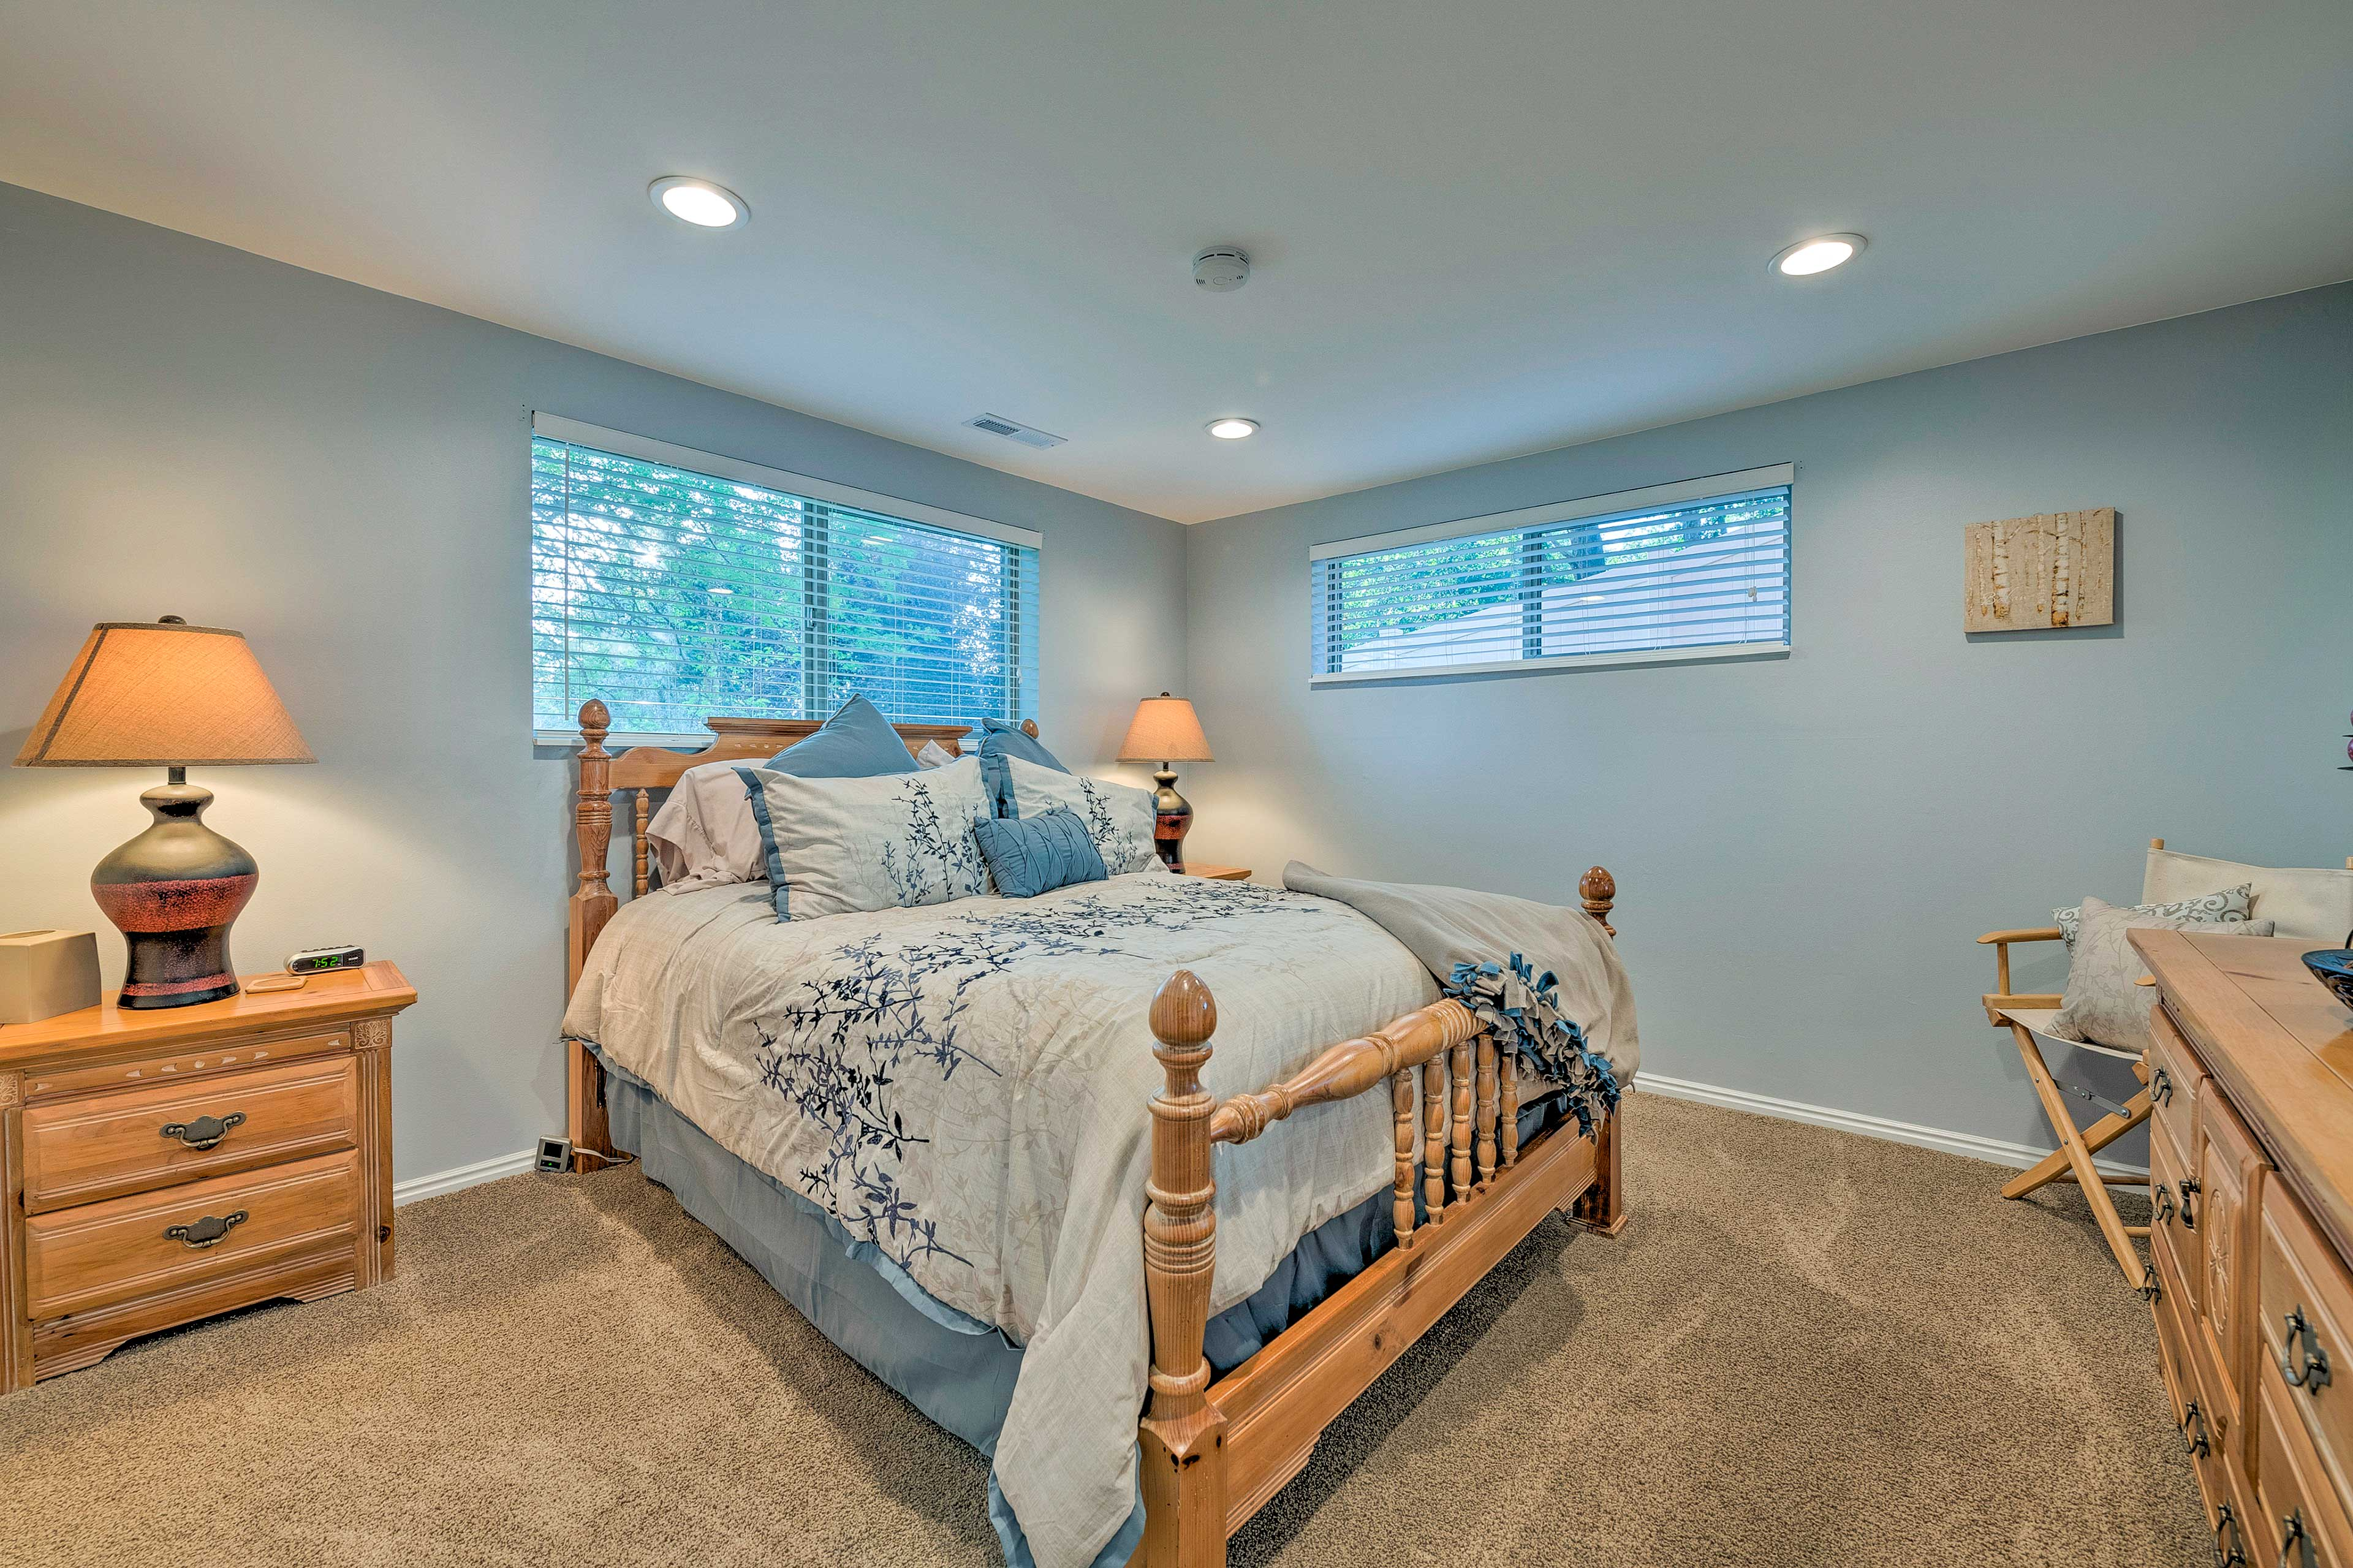 The property features 3 private bedrooms.